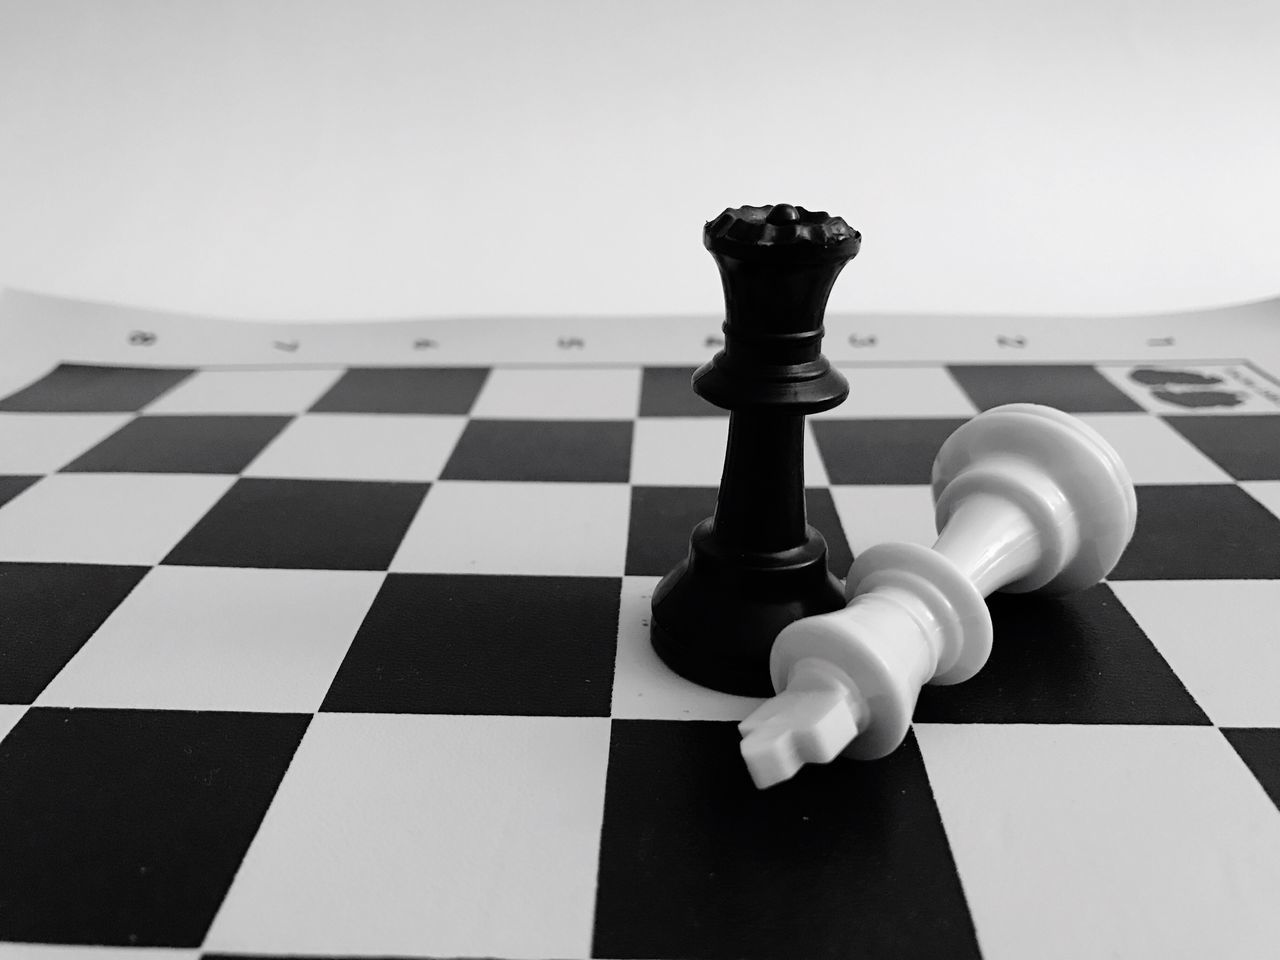 Chess Chess Piece Chess Board Leisure Games King - Chess Piece Strategy Black Color No People Competition Queen - Chess Piece Knight - Chess Piece Iq Pasttime Two Players Match One On One Move Checkmate Check Black And White Blackandwhite Black & White Black And White Photography Blackandwhite Photography Blackandwhitephotography